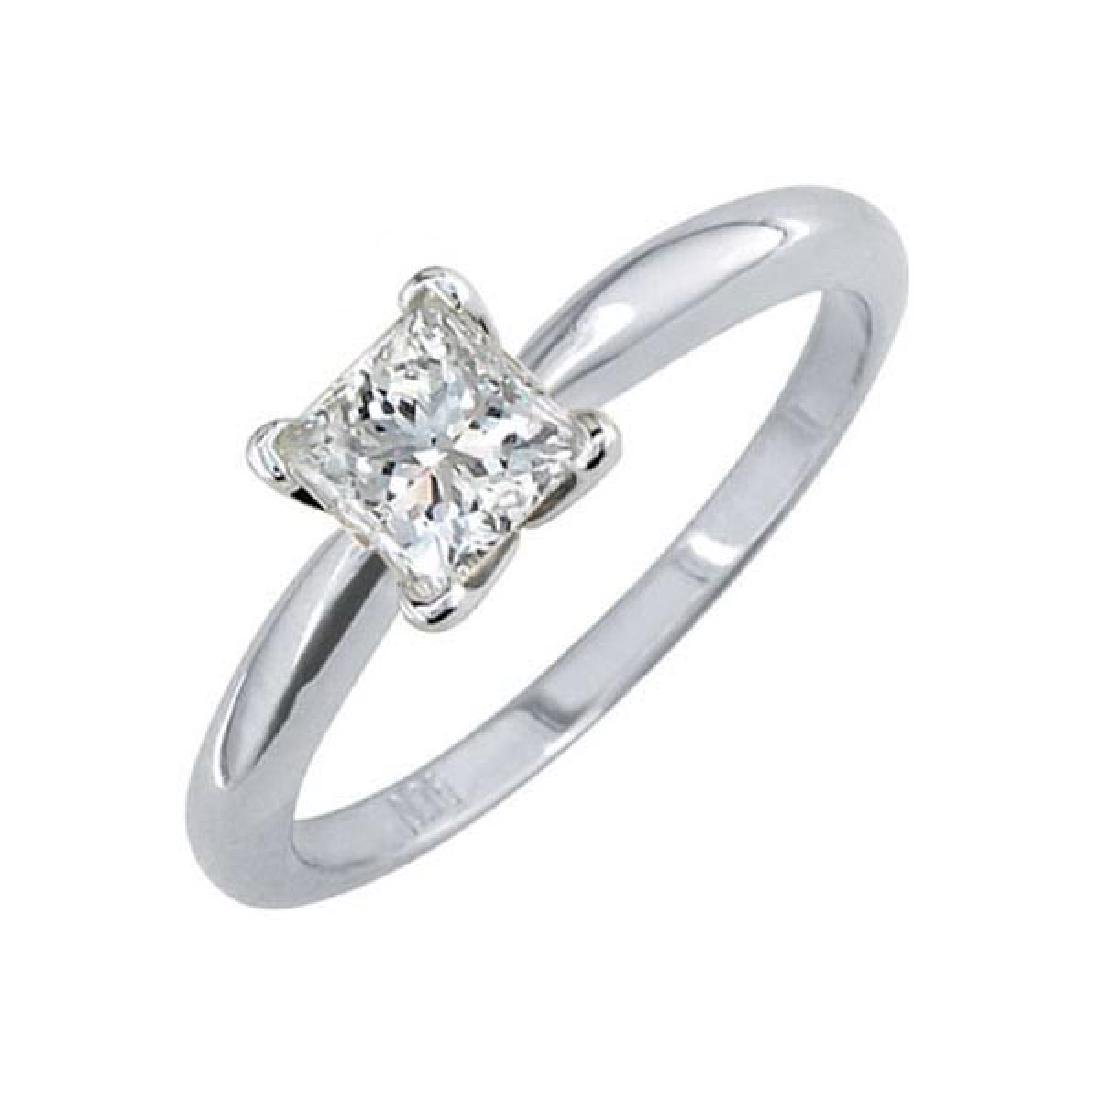 Certified 0.71 CTW Princess Diamond Solitaire 14k Ring